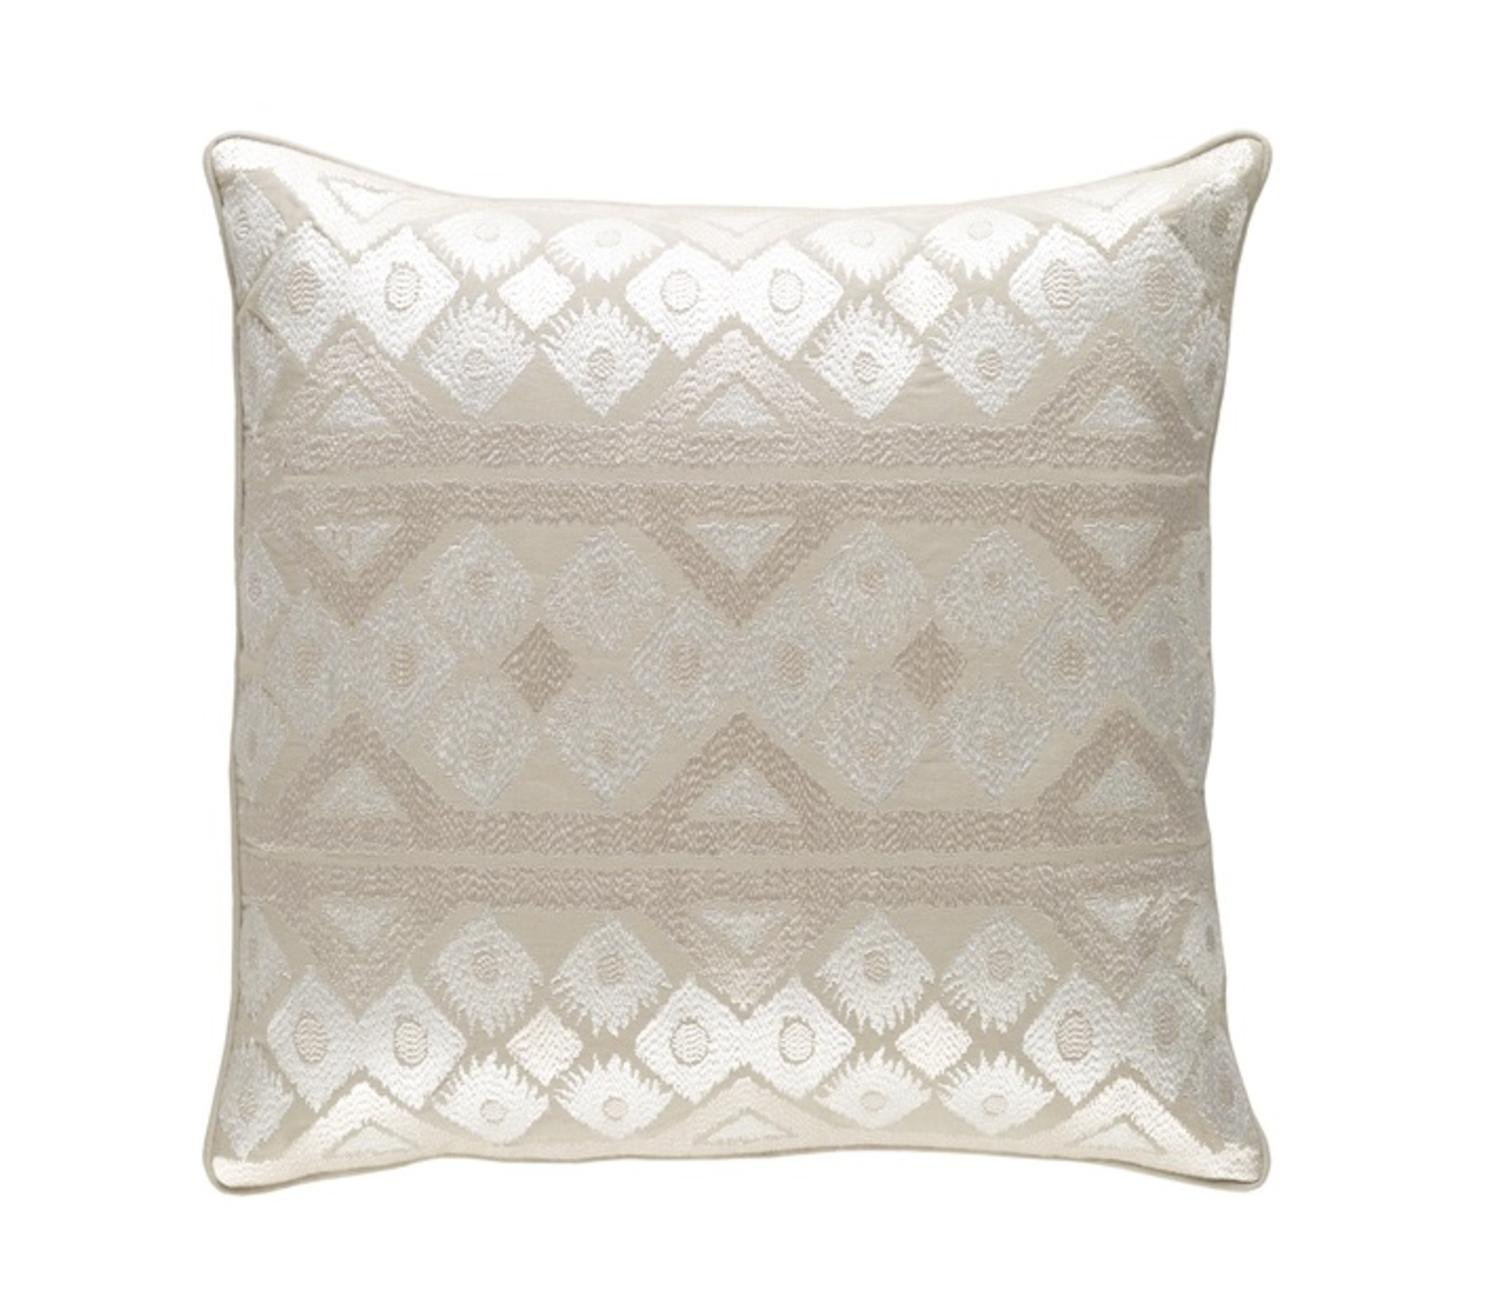 Diva At Home 20'' Linen White and Cream Chevron Decorative Throw Pillow - Down Filler